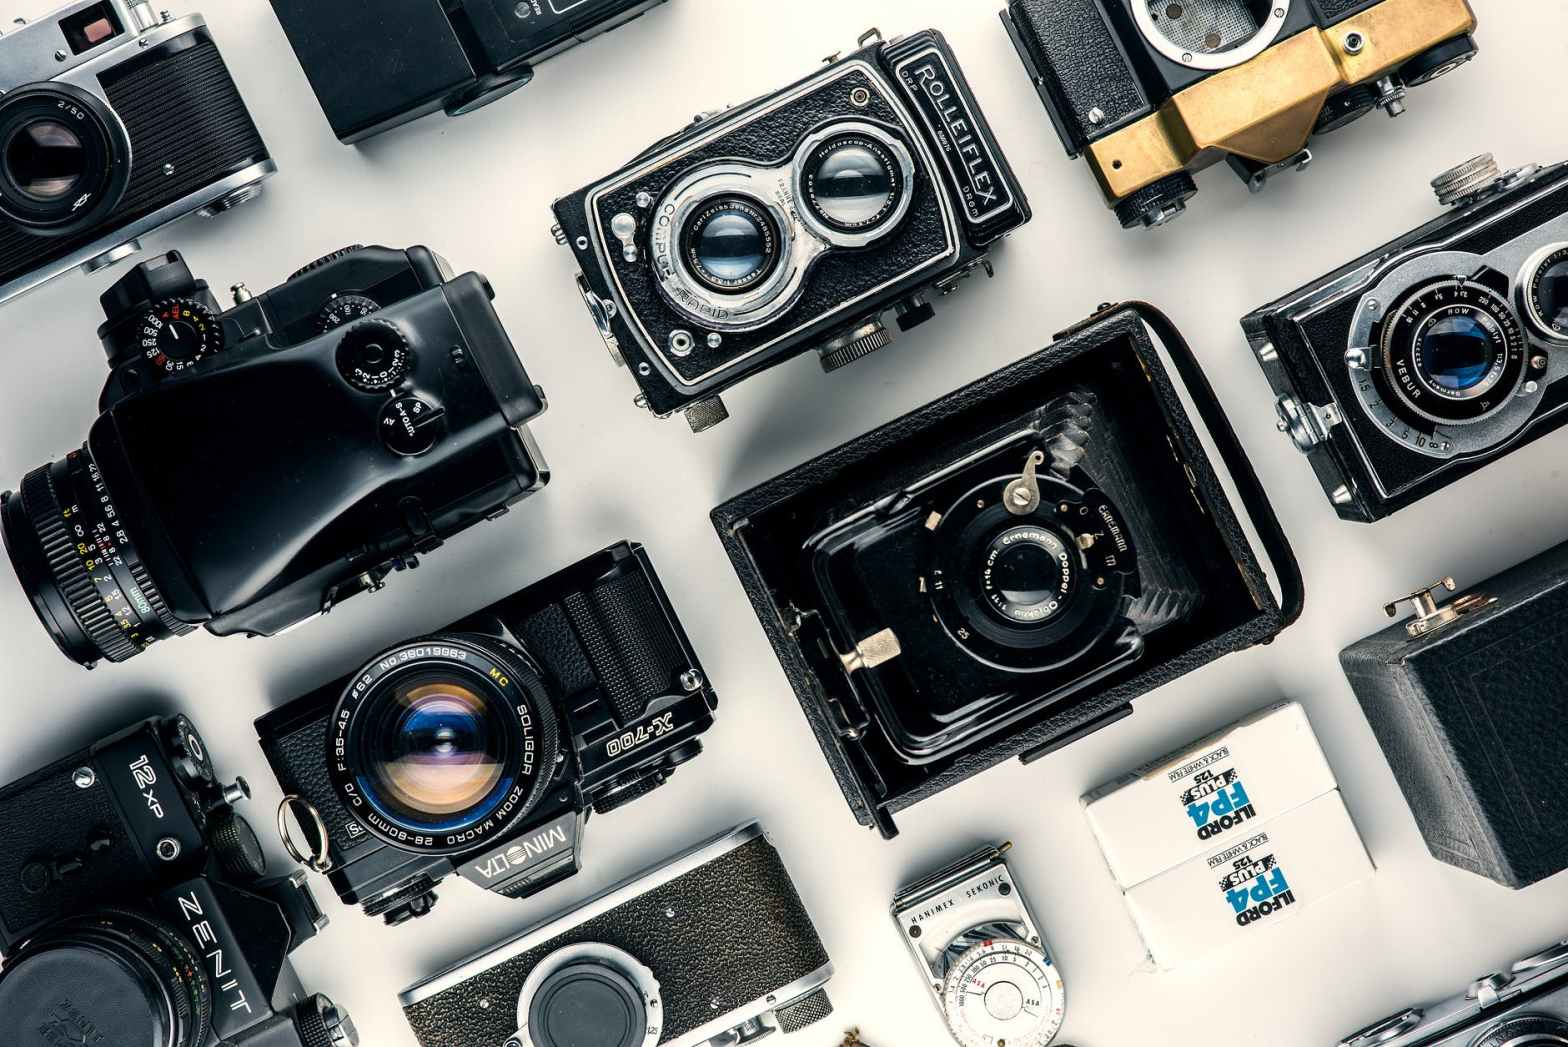 assorted black and gray cameras